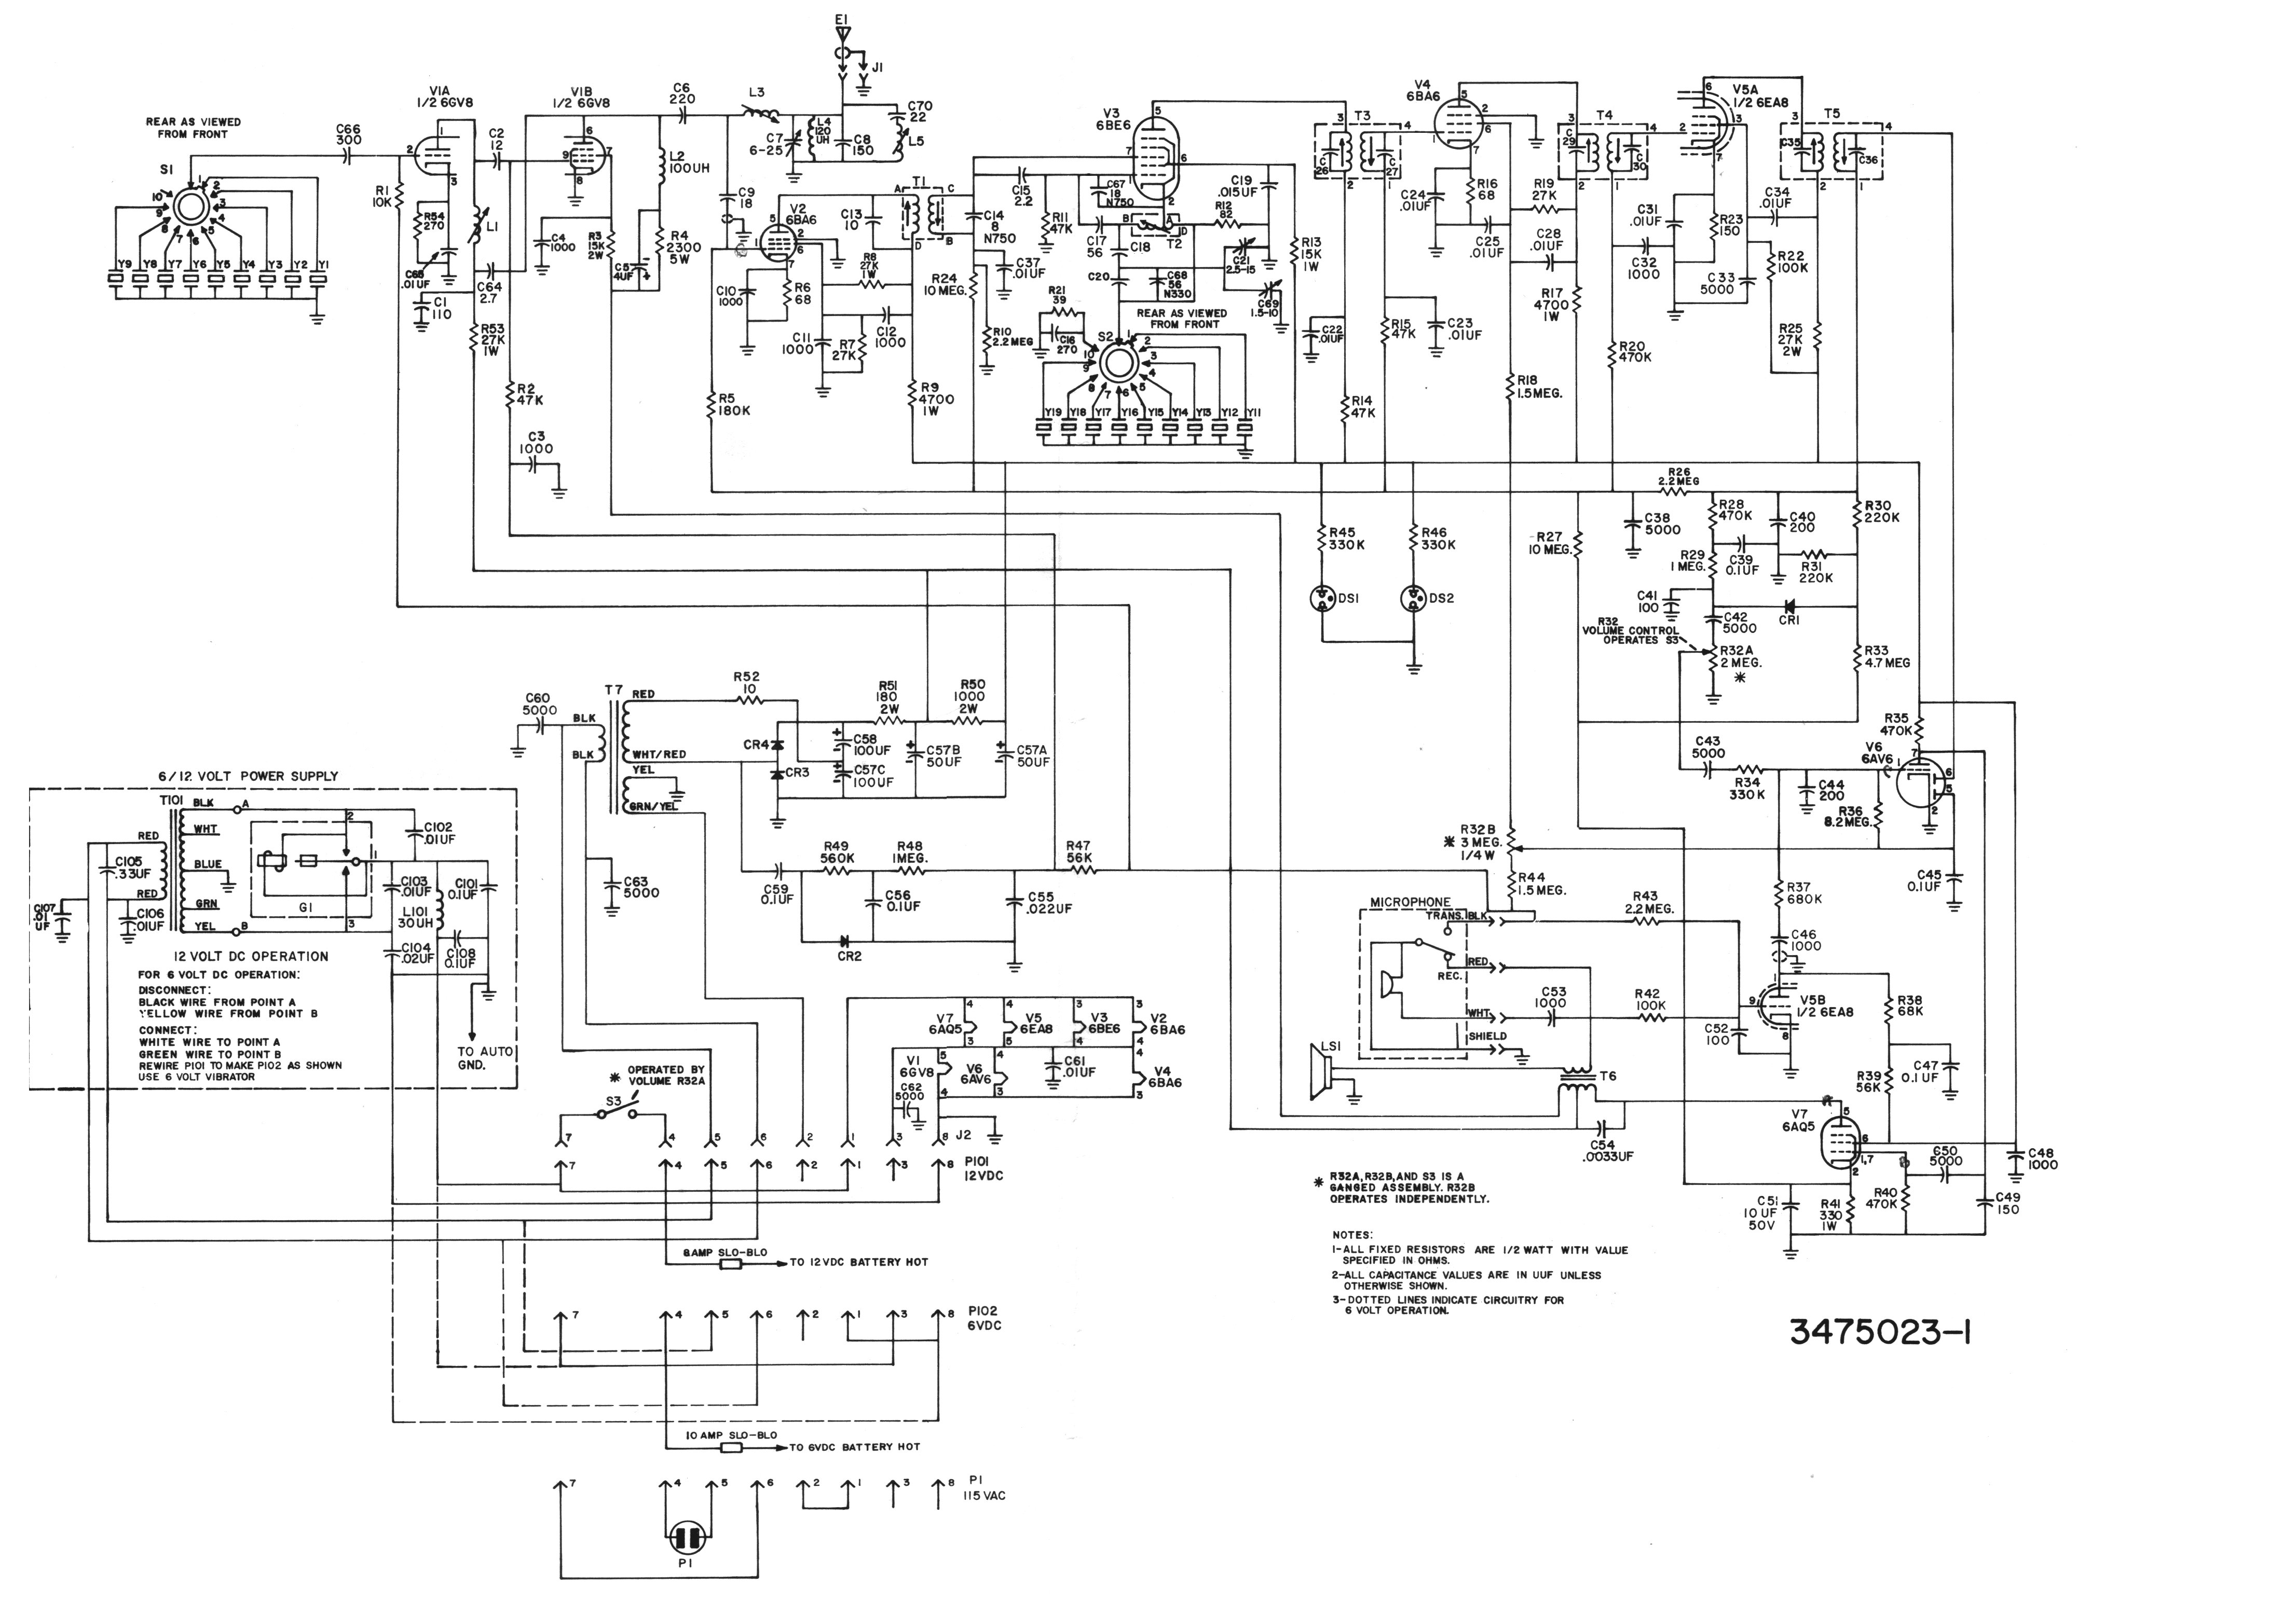 Honda Goldwing Trailer Wiring Diagram furthermore Pioneer Car Stereo Wiring Diagram Free together with Sportster Wiring Diagram likewise You Who Are Looking For 2002 Dodge Ram 1500 Wiring Diagram additionally Car Trailer Wire Harness And Diagram Trailer Wiring Harness Diagram. on radio schematic diagrams